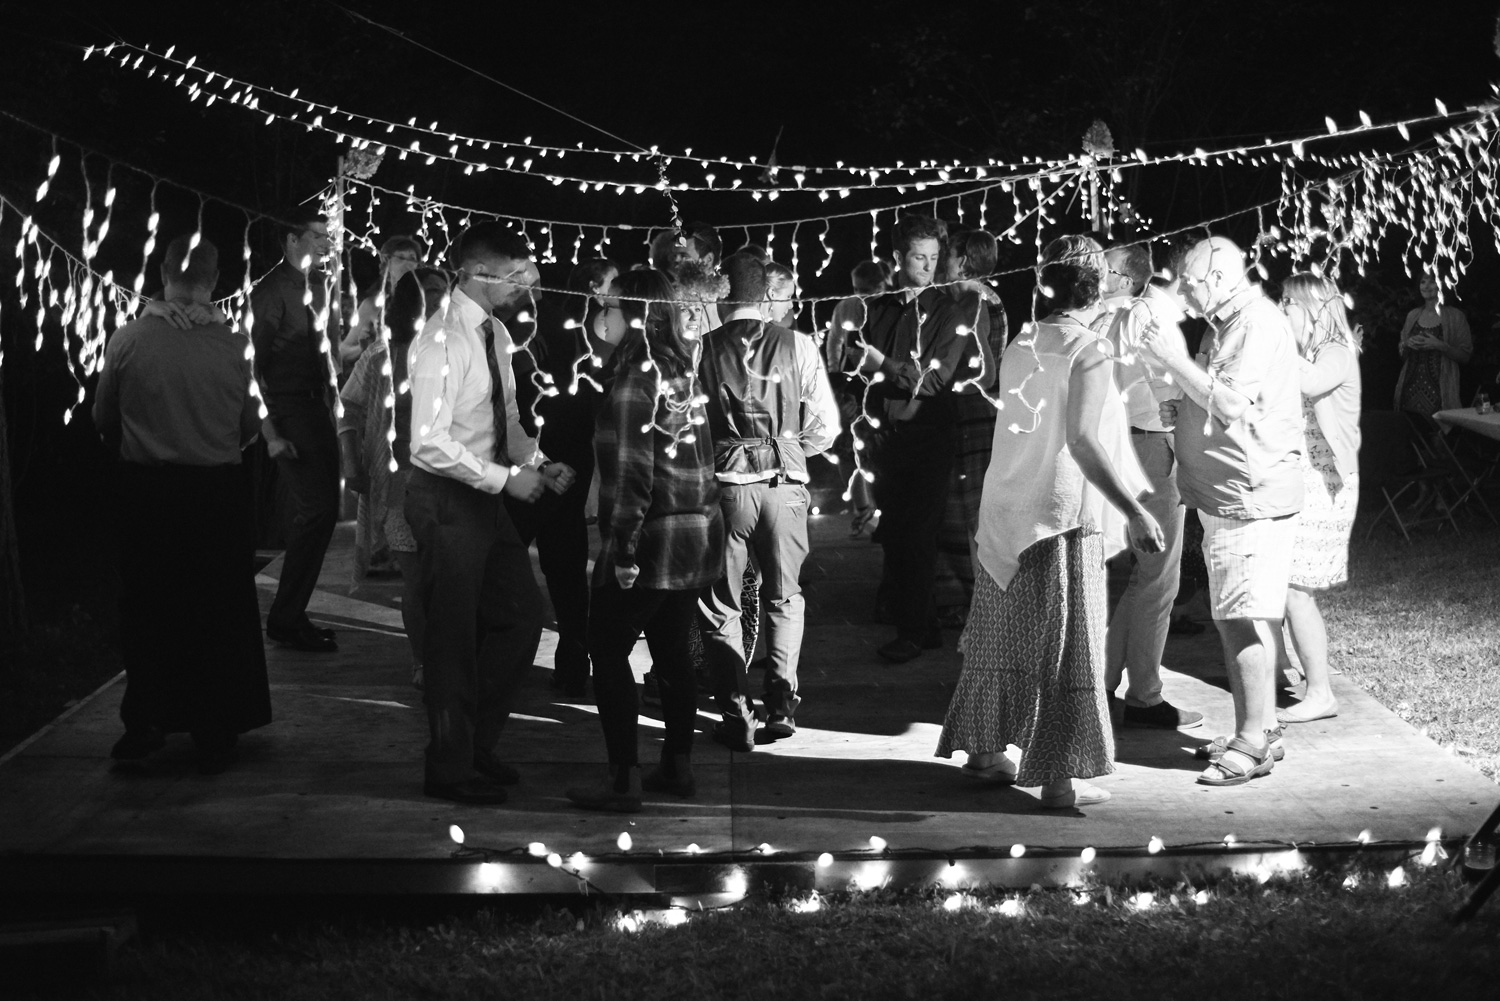 black-and-white-photo-of-a-dance-at-outdoor-reception.jpg